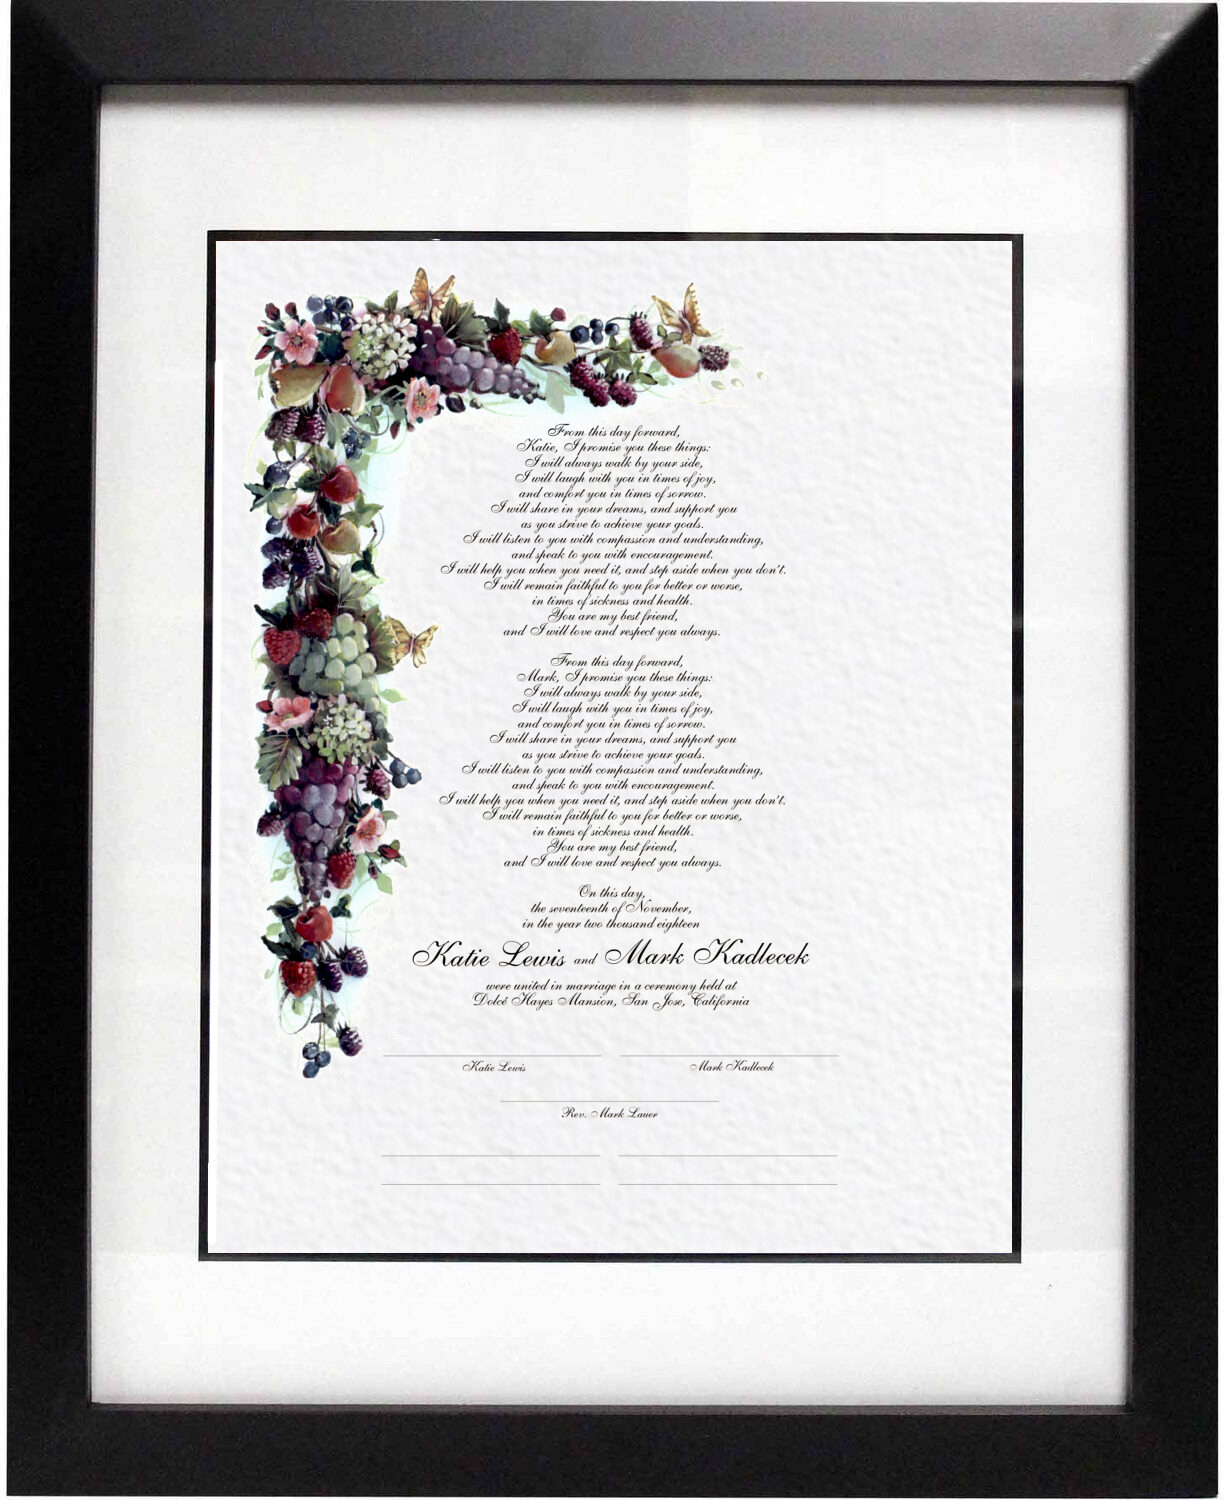 Photograph of Fruit and Butterflies Wedding Certificates